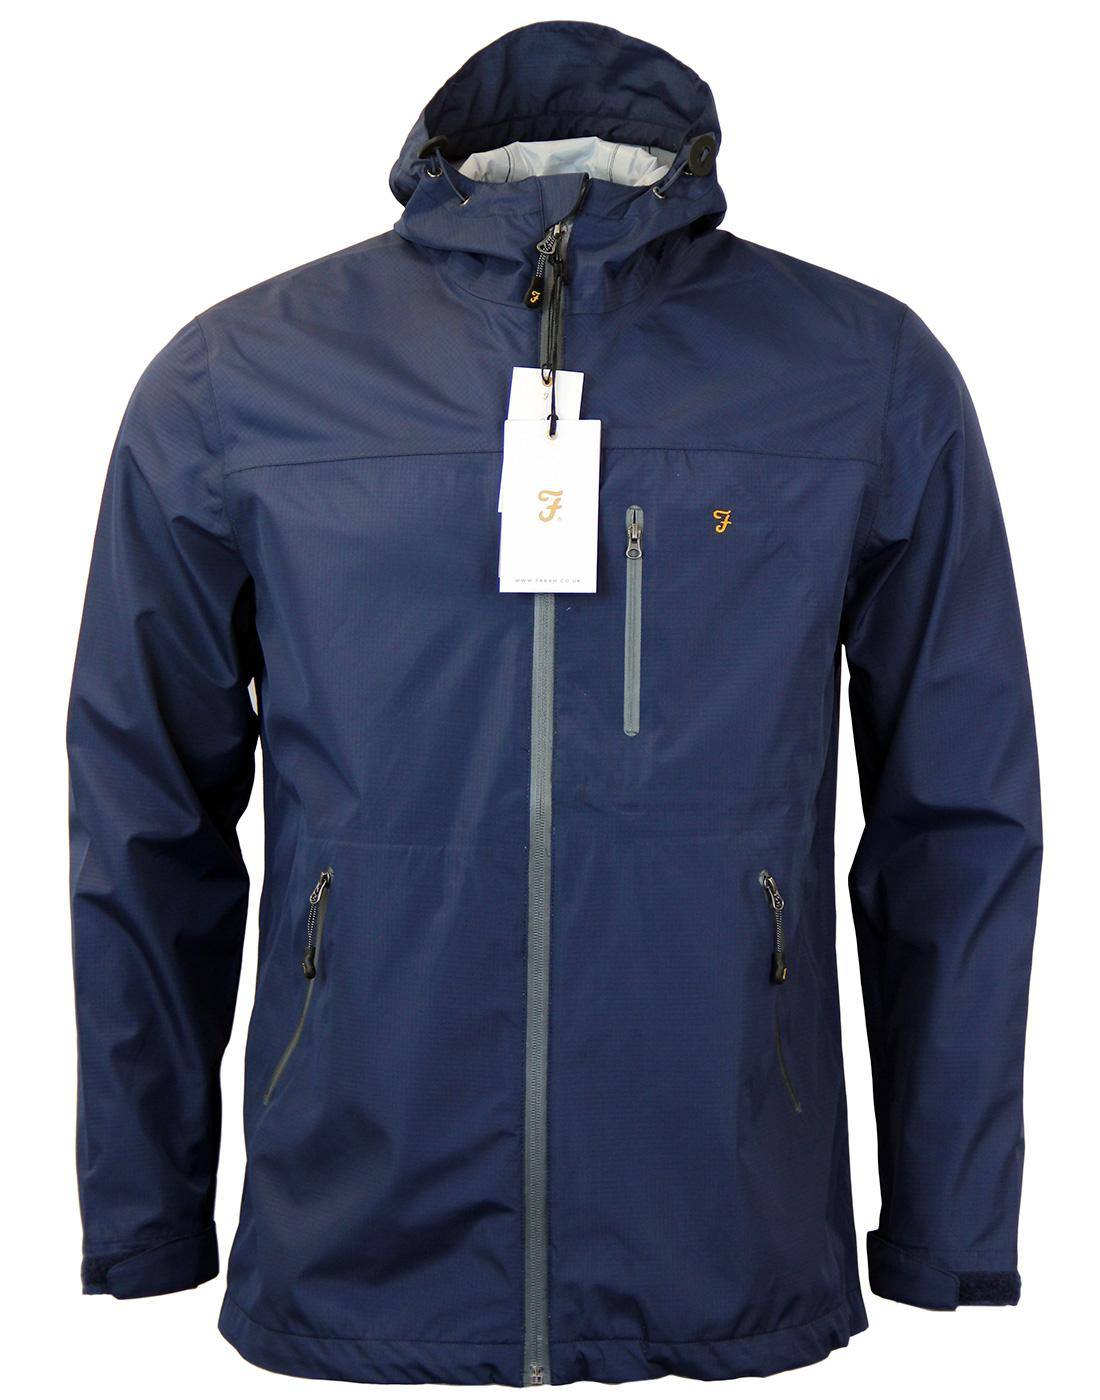 Tansley FARAH Retro Indie Water Resistant Jacket